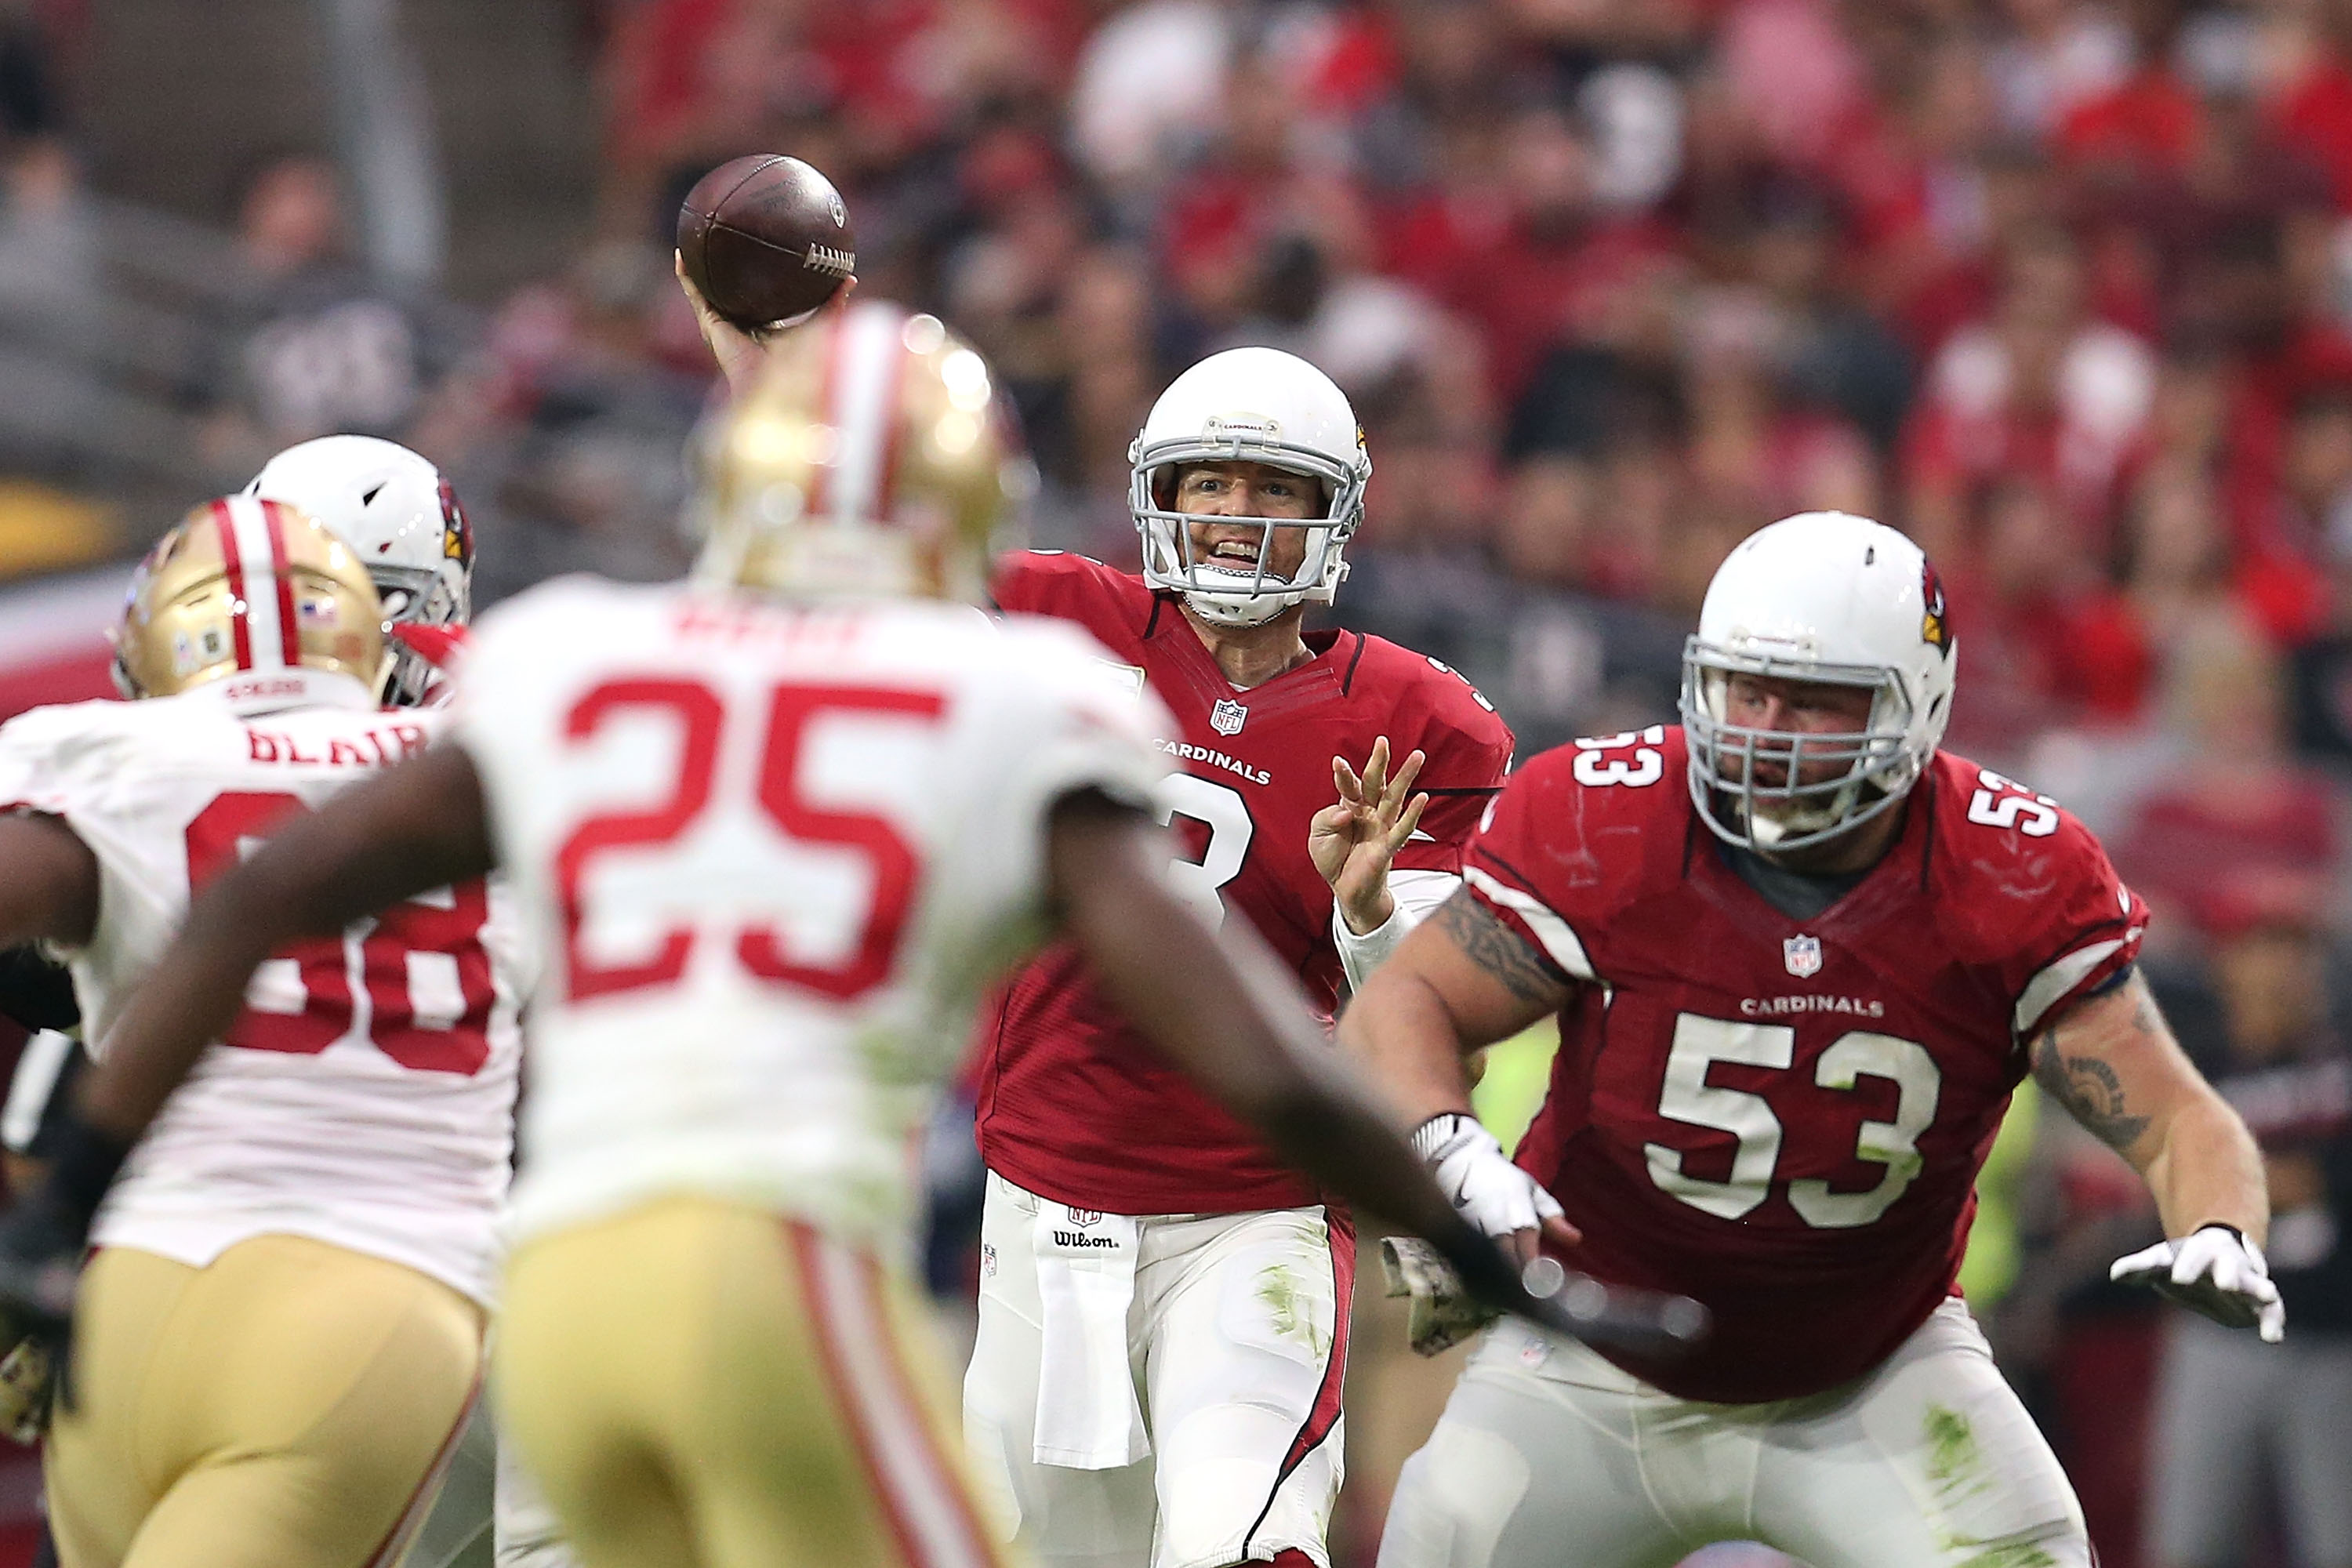 What defensive breakdowns happened for 49ers on Cardinals' OT drive?